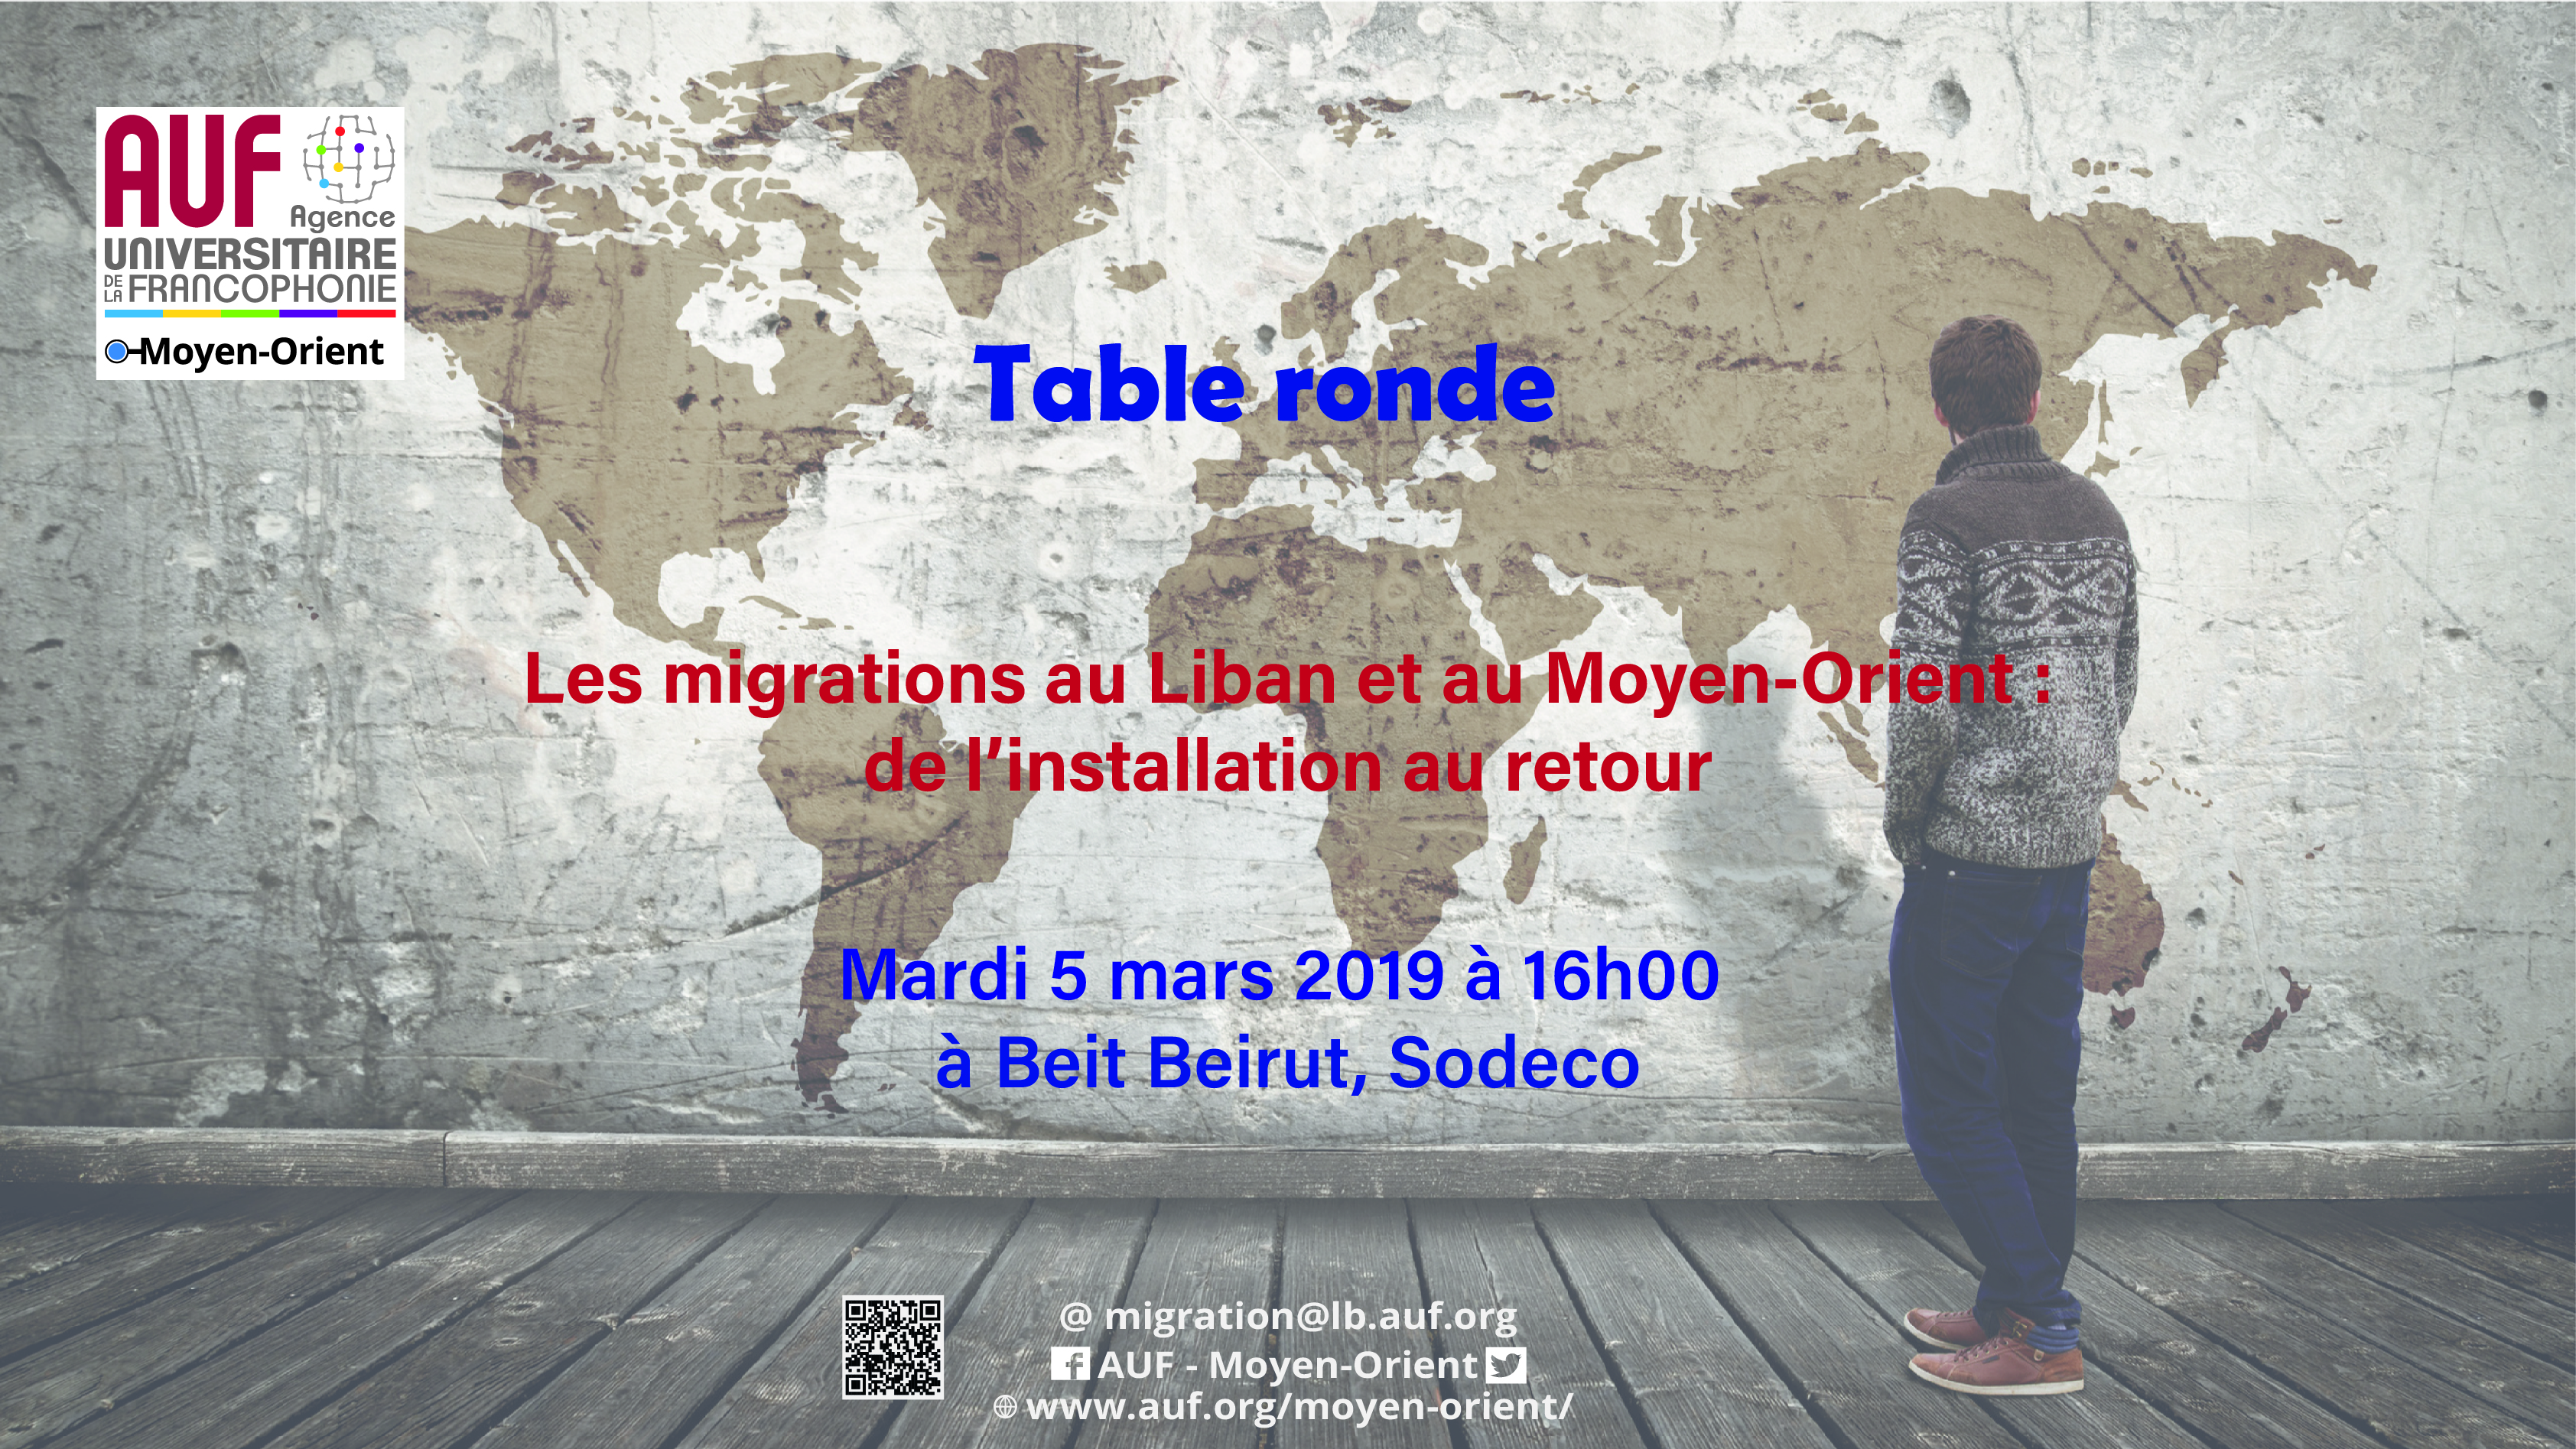 AUF table ronde 5 mars réfugiés migrants déplacés